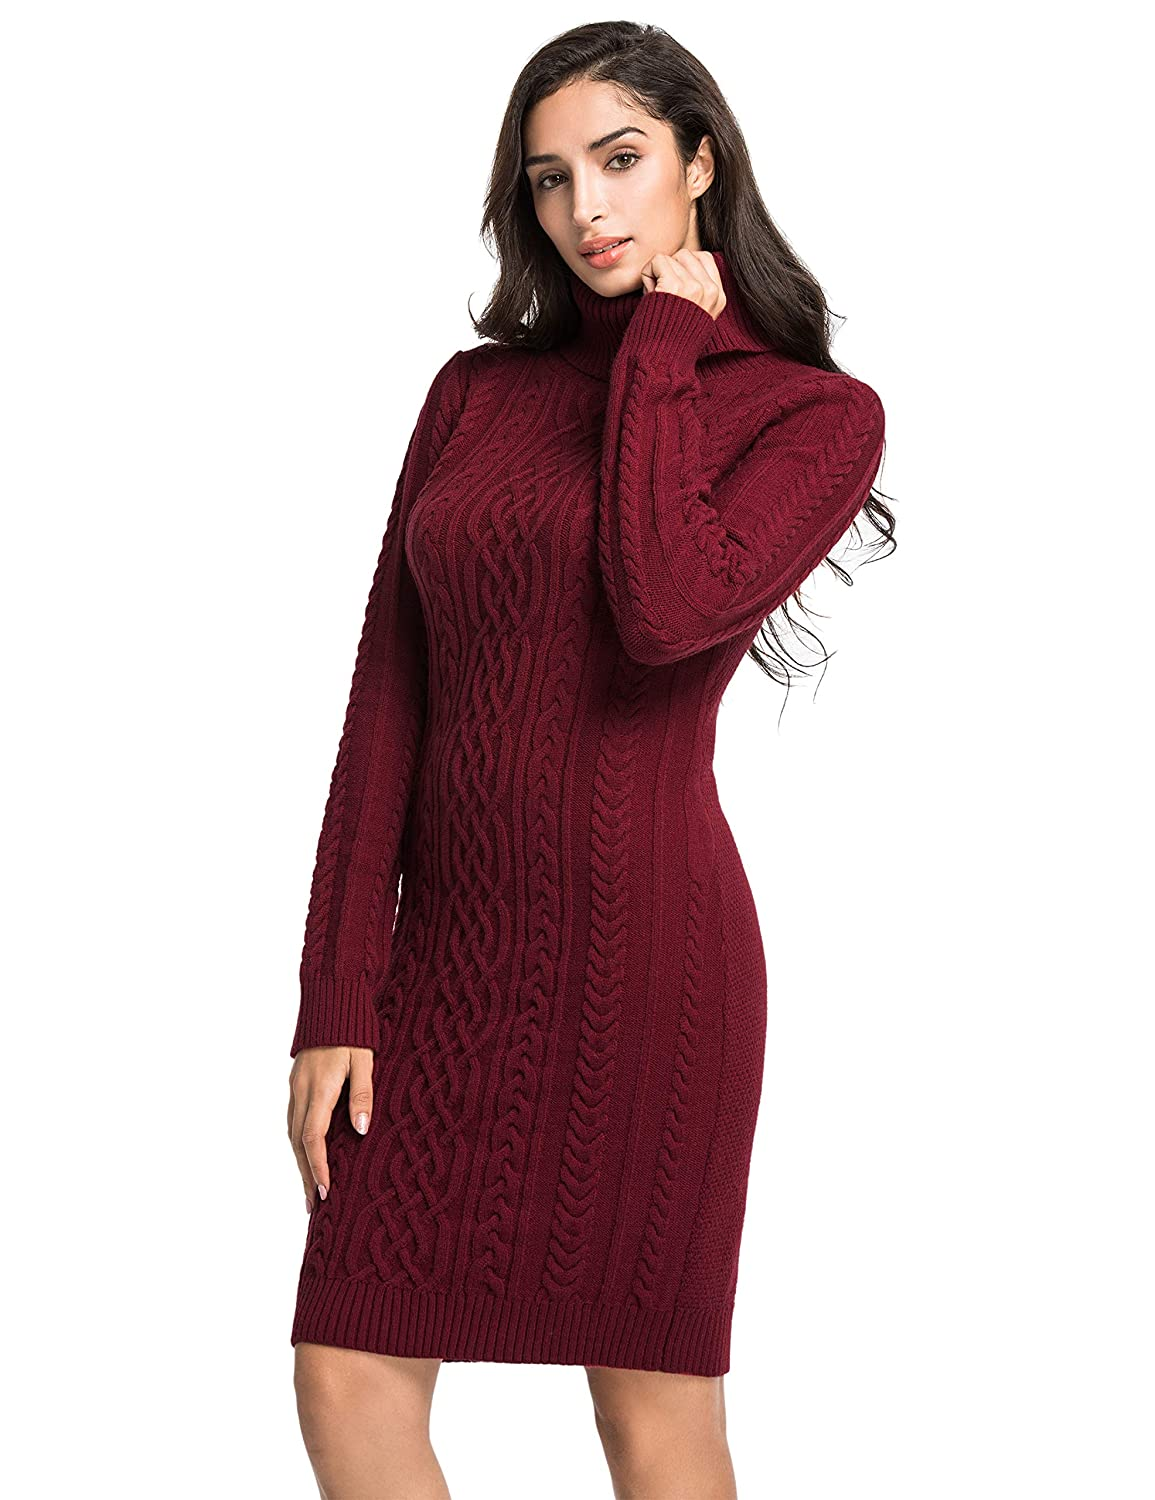 576e29c987f PrettyGuide Women s Sweater Dress Cable Knit Slim Fit Turtleneck Sweater at  Amazon Women s Clothing store